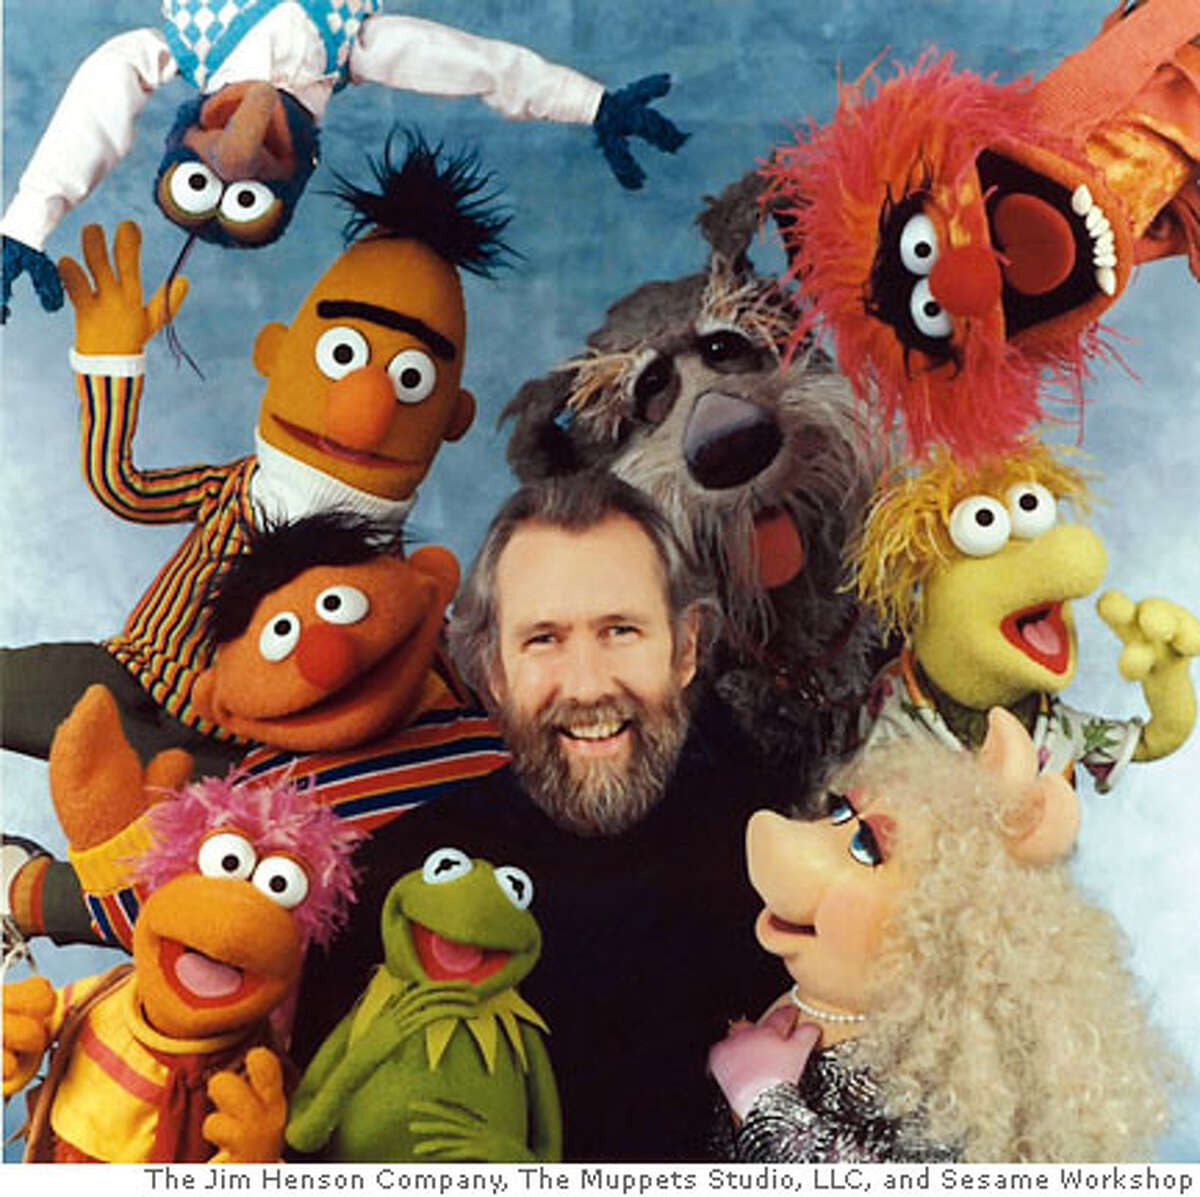 Jim Henson with various Muppet characters.